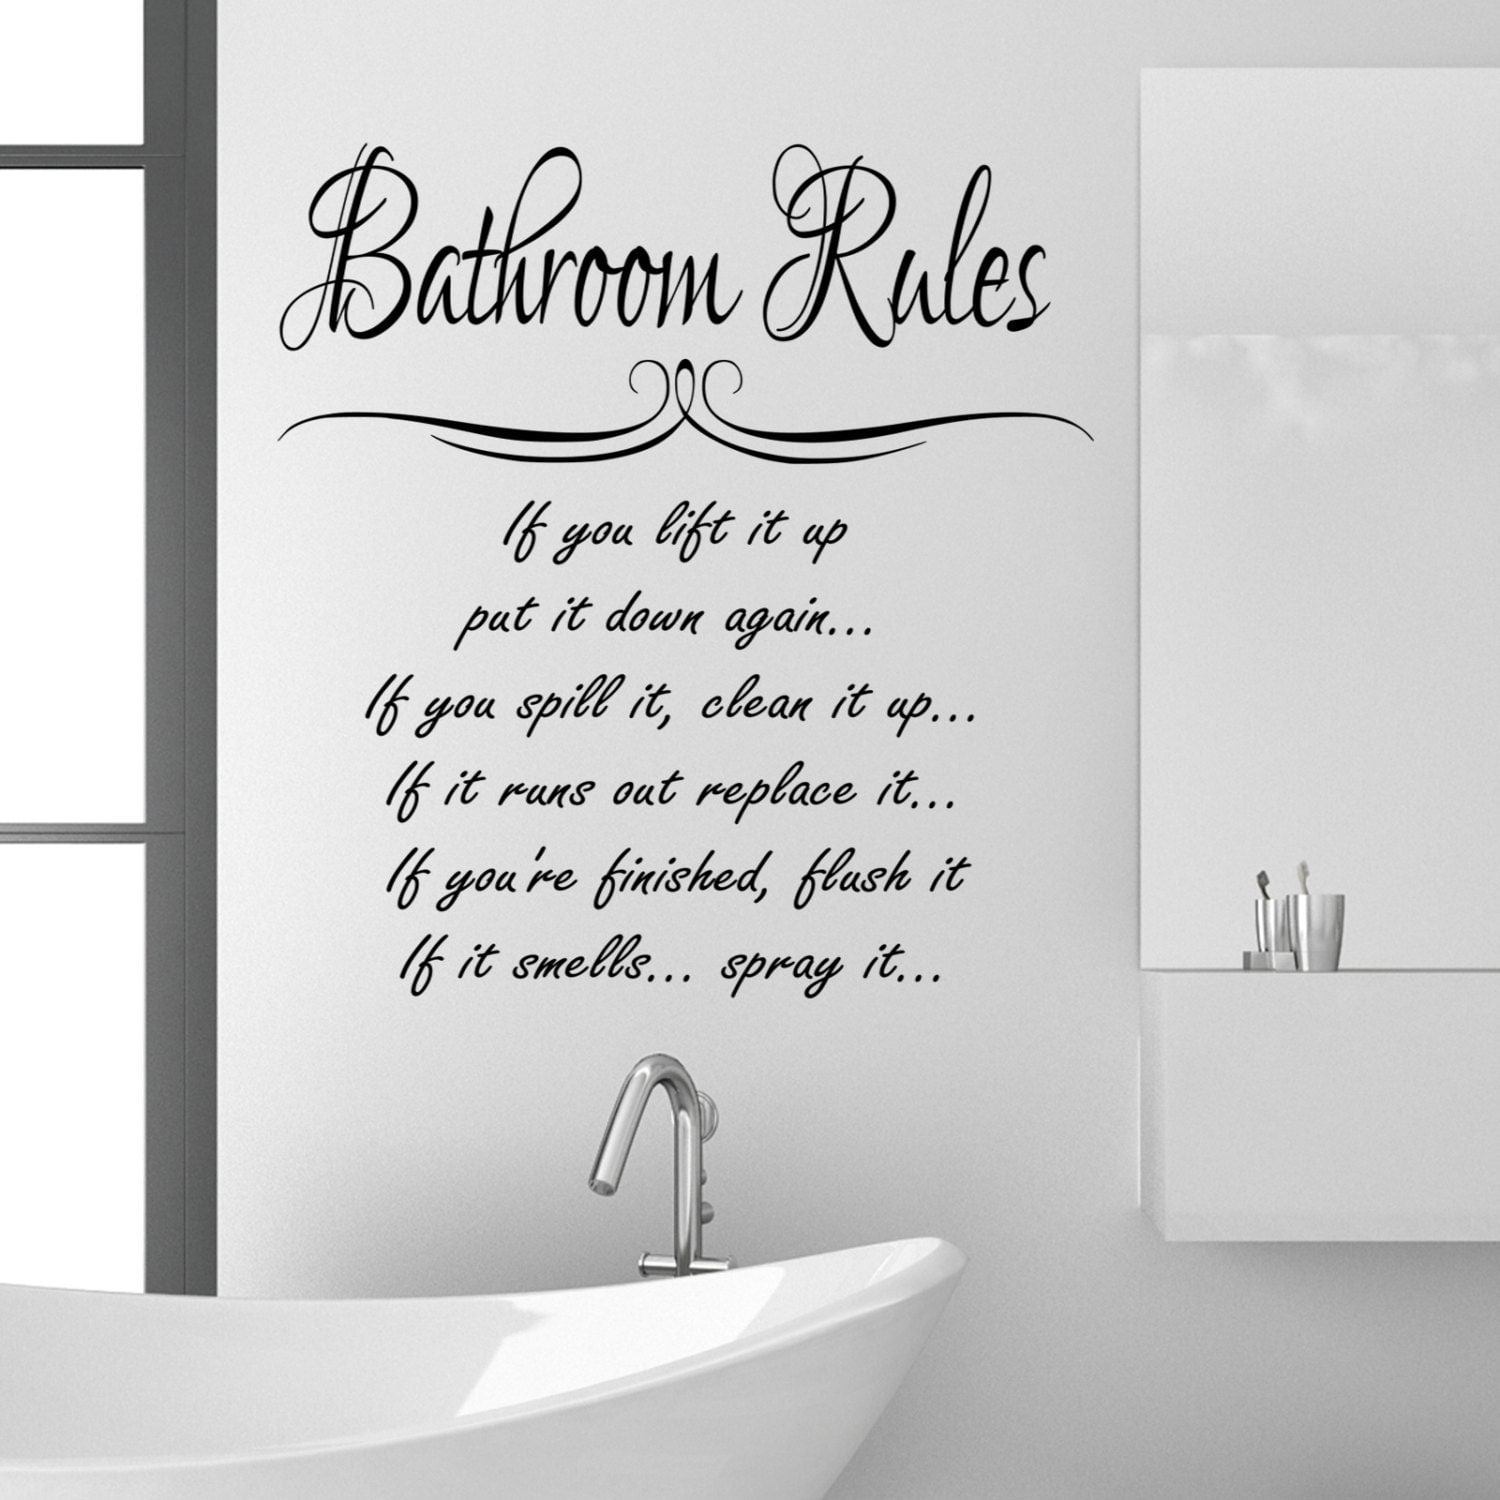 Funny bathroom vinyl wall quotes quotesgram for Bathroom quote ideas